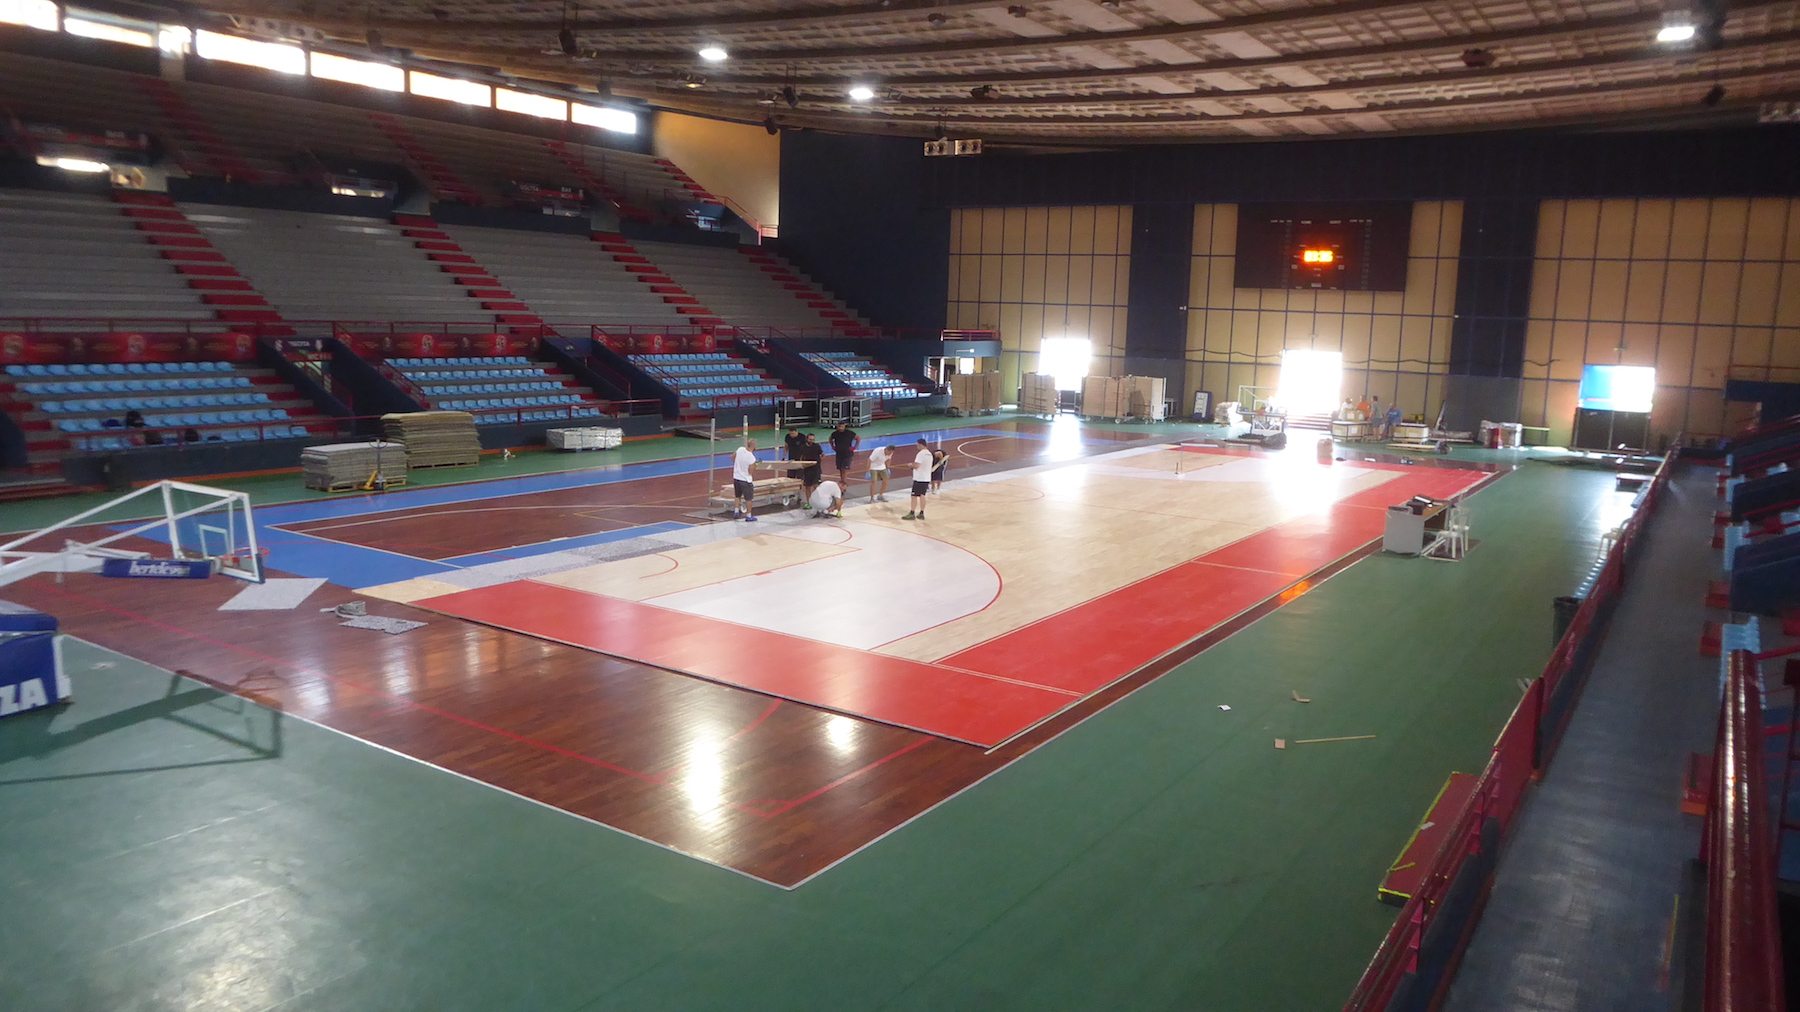 Yet another collaboration between Lega Basket and Dalla Riva Sportfloors